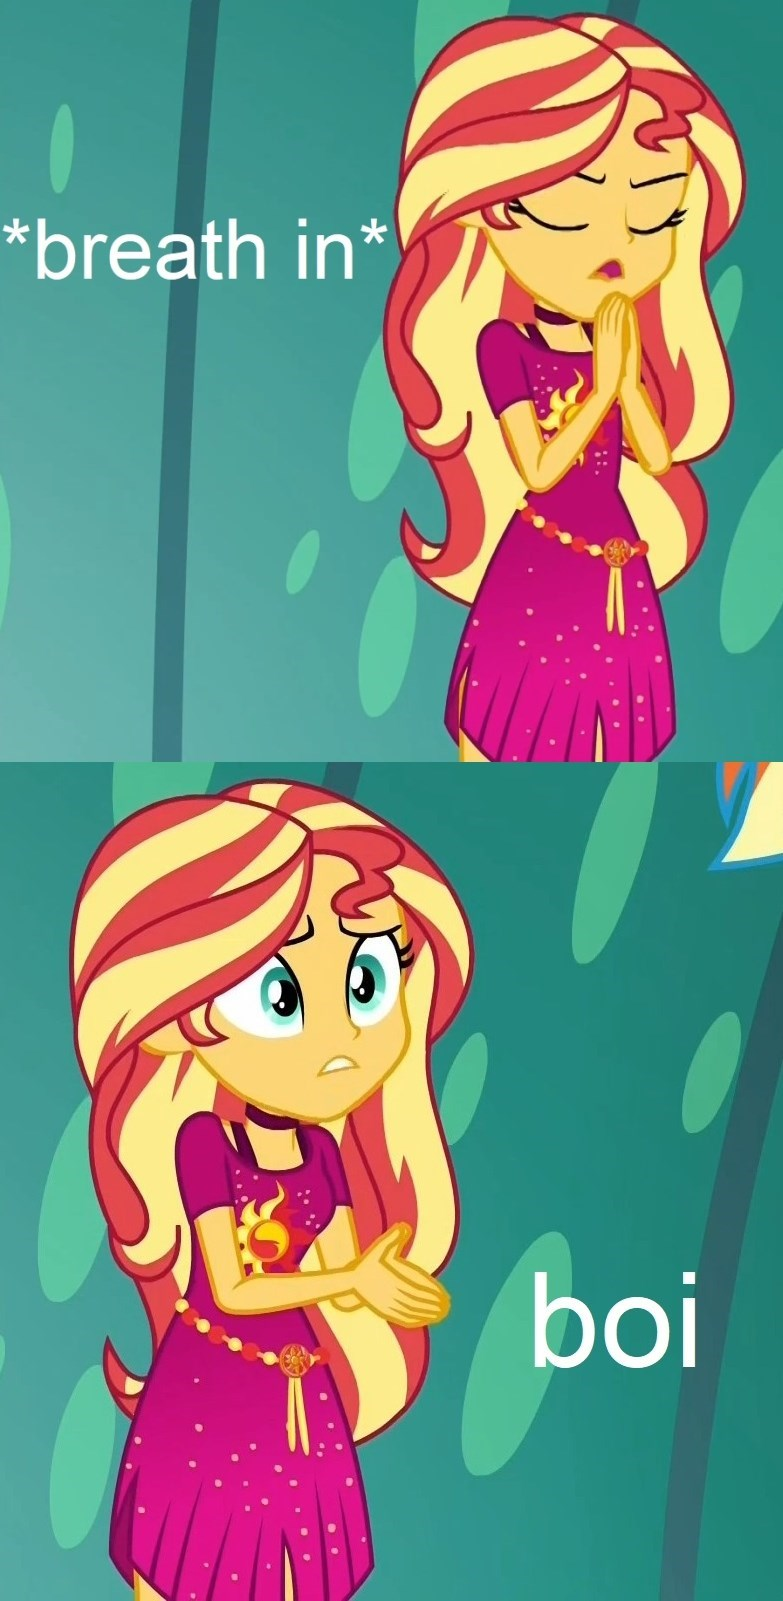 equestria girls screencap boi Memes spring breakdown sunset shimmer - 9289777920